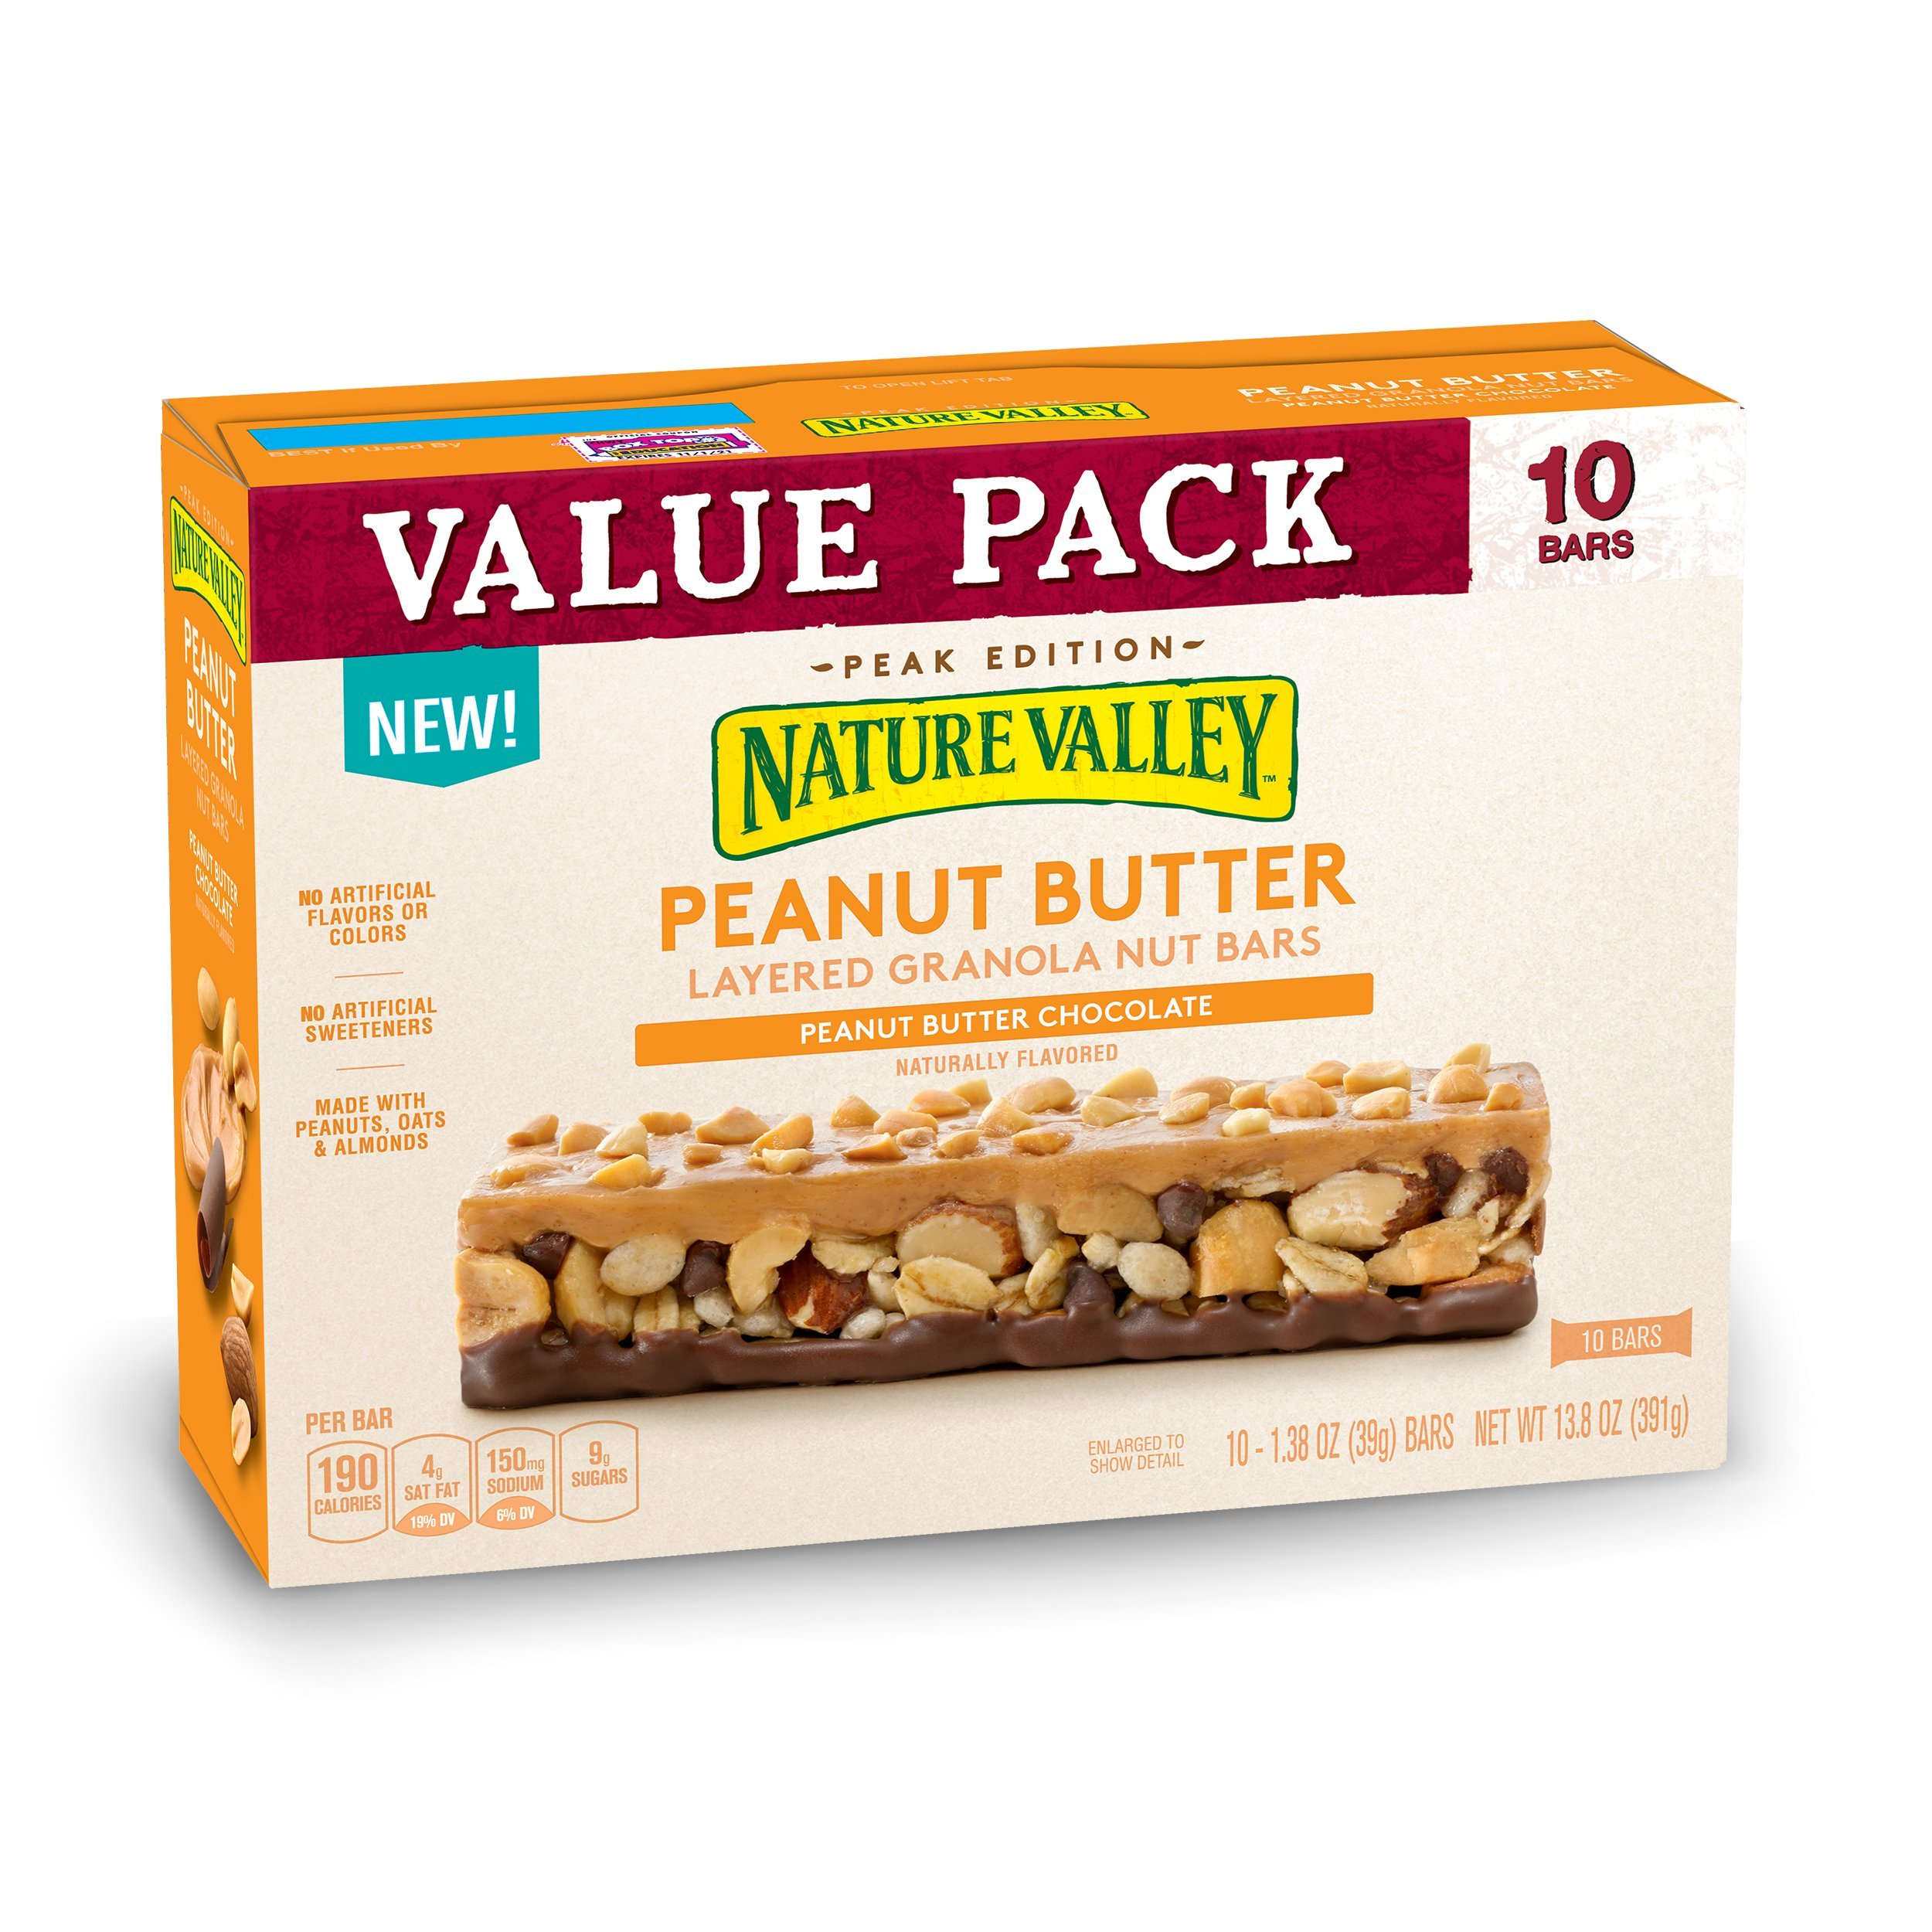 Nature Valley Layered Peanut Butter And Chocolate Granola Nut Bars, 13.8 oz: Amazon.com: Grocery & Gourmet Food